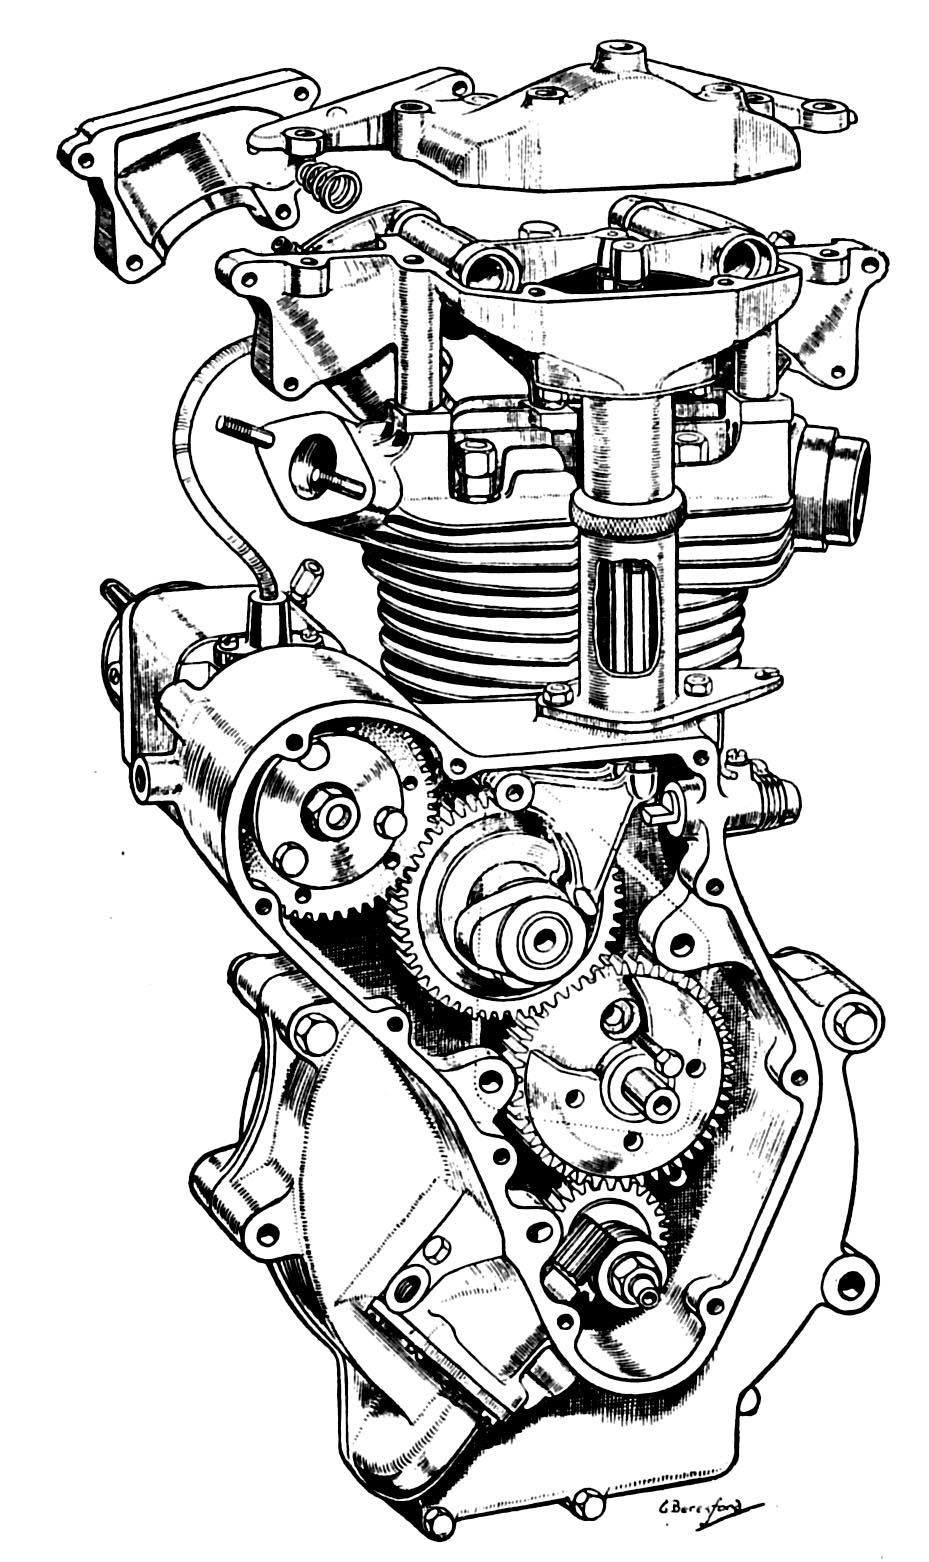 The velobanjogent pen and ink drawings from motorcycle and motorcycling